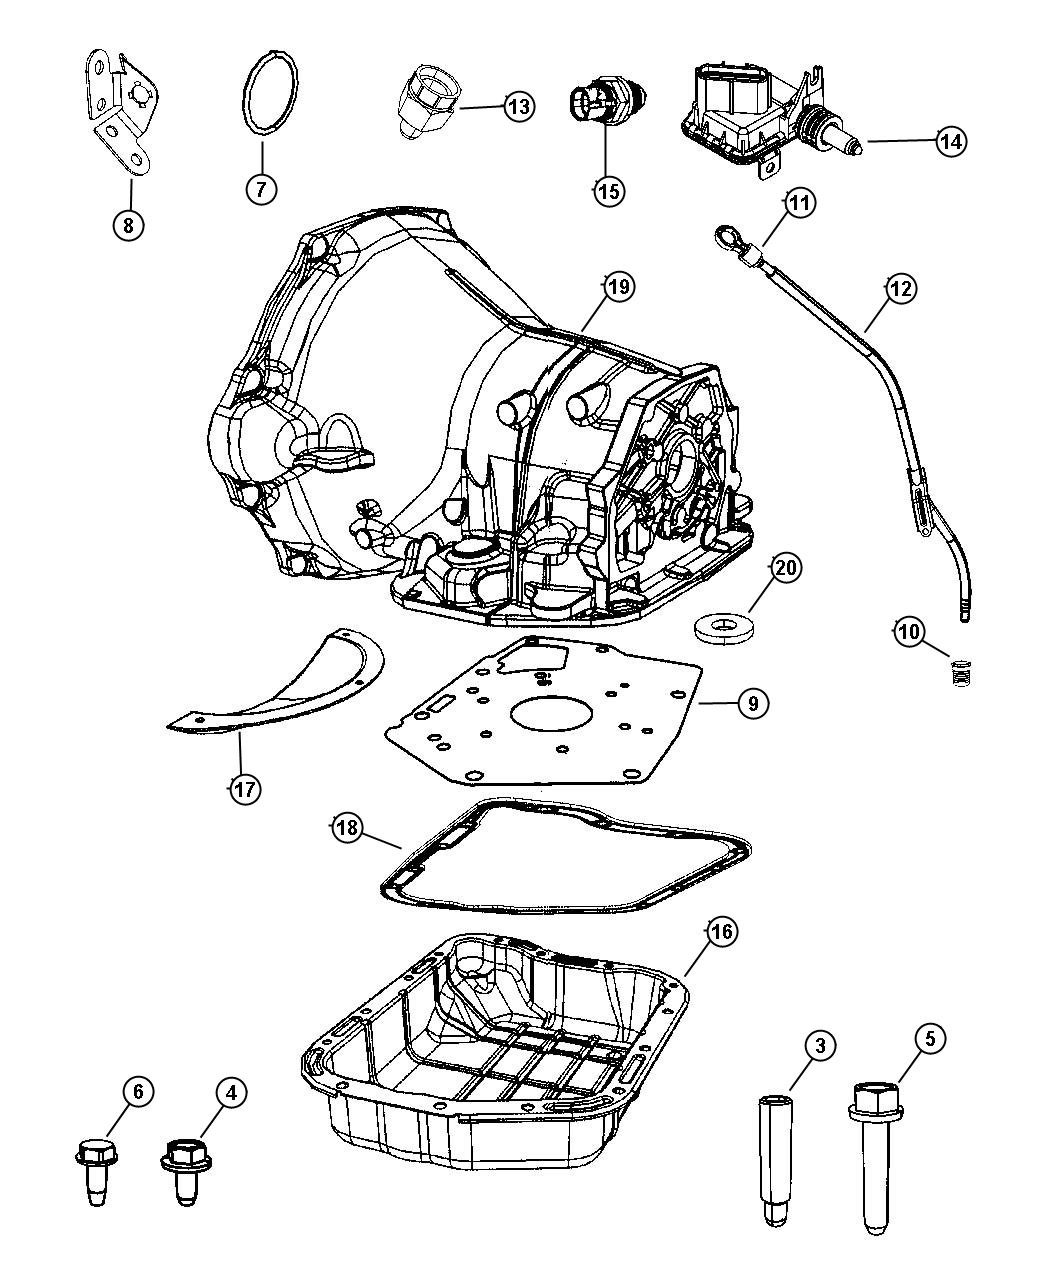 Chrysler 3 8l Engine Wire Harness Diagram Chrysler Get